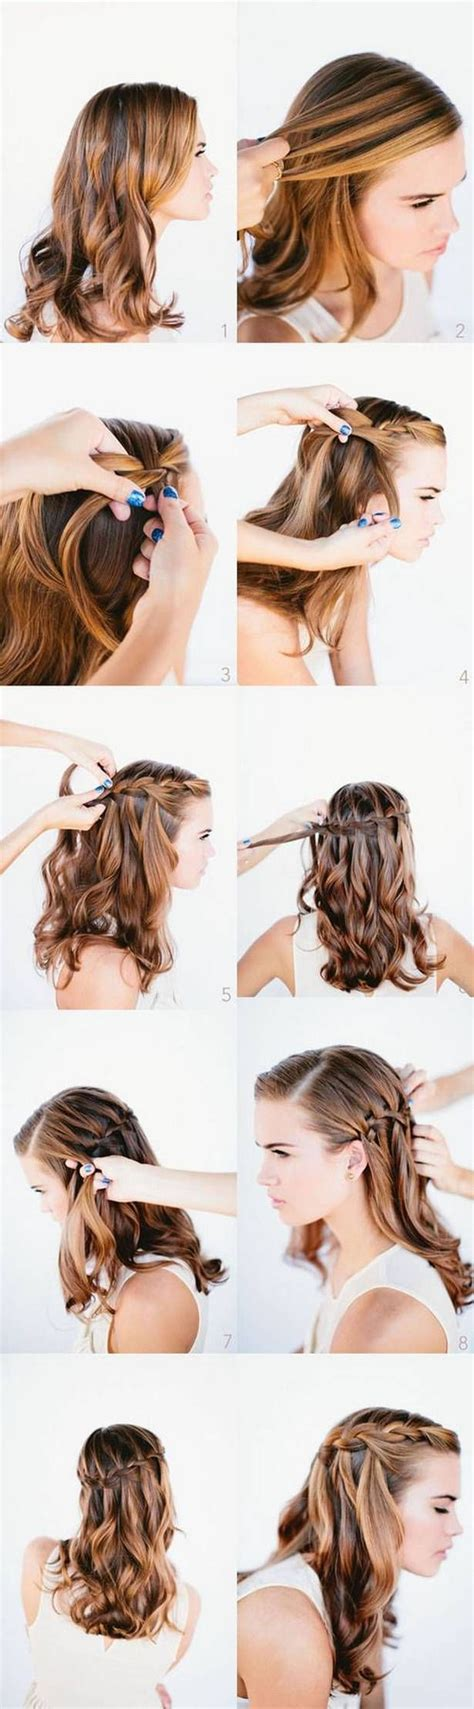 easy hairstyles for long hair to do at home step by step